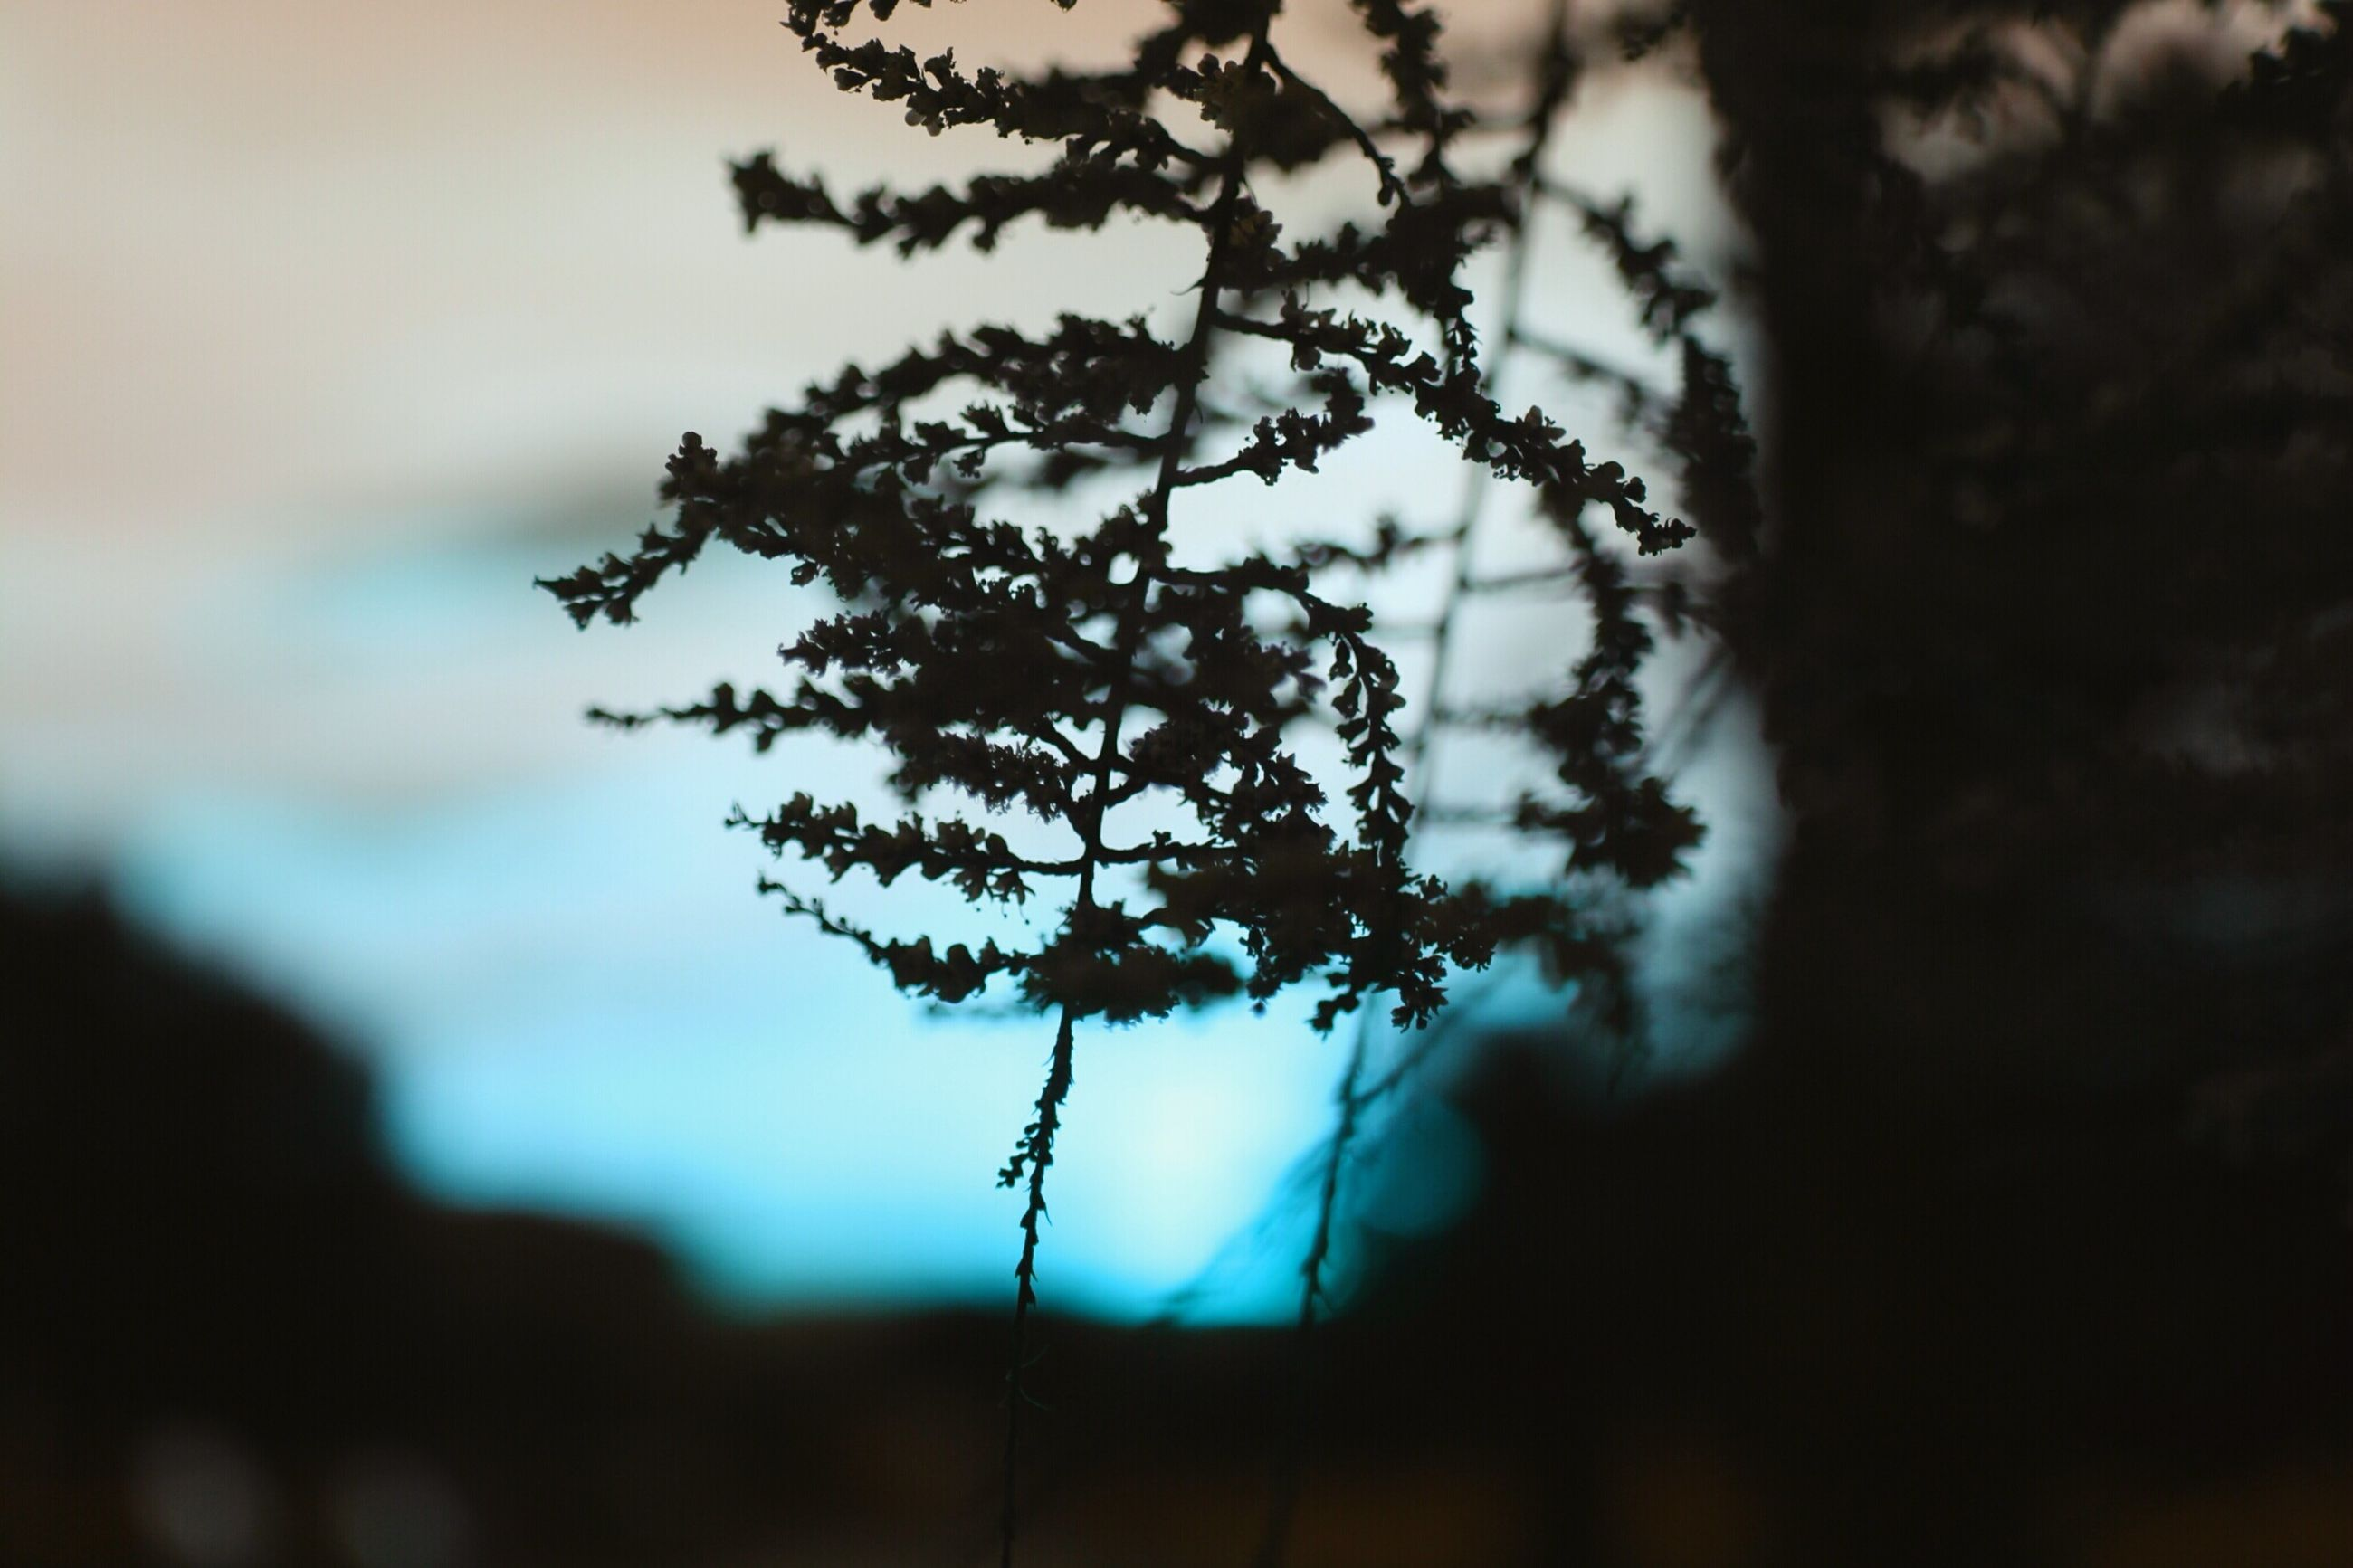 branch, focus on foreground, growth, tree, nature, close-up, silhouette, beauty in nature, sky, selective focus, tranquility, twig, plant, dusk, low angle view, stem, outdoors, fragility, no people, flower